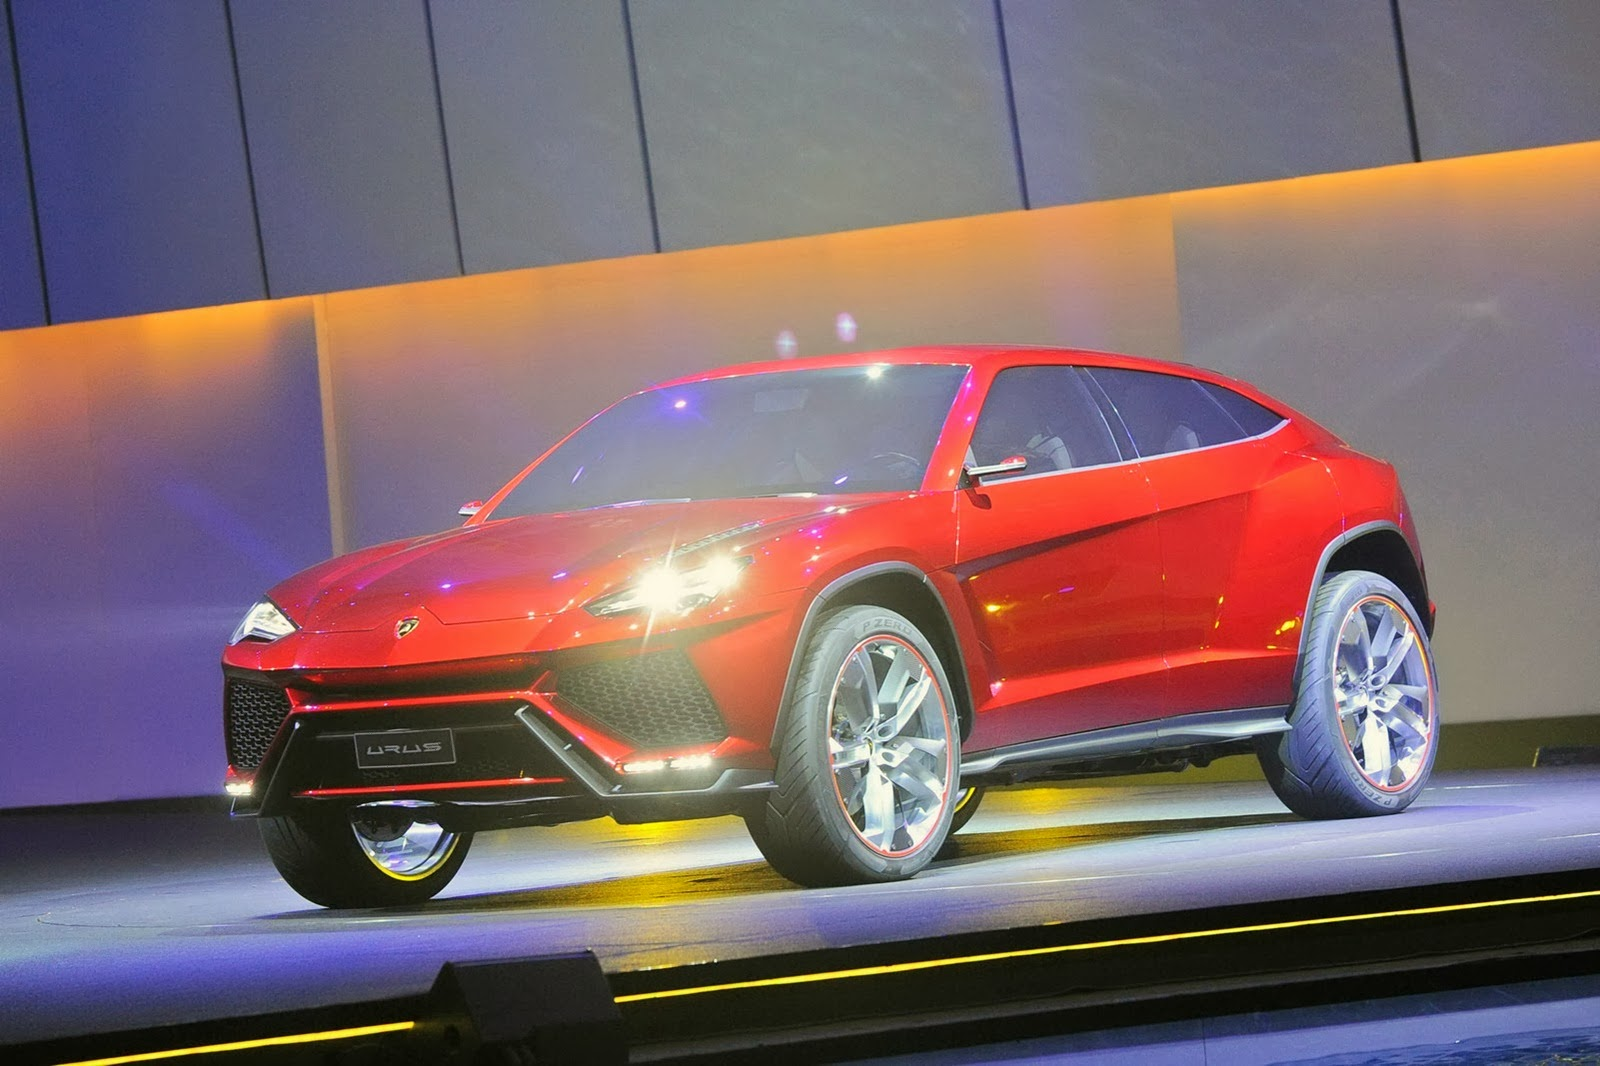 lamborghini wants to attract more women with upcoming urus suv. Black Bedroom Furniture Sets. Home Design Ideas